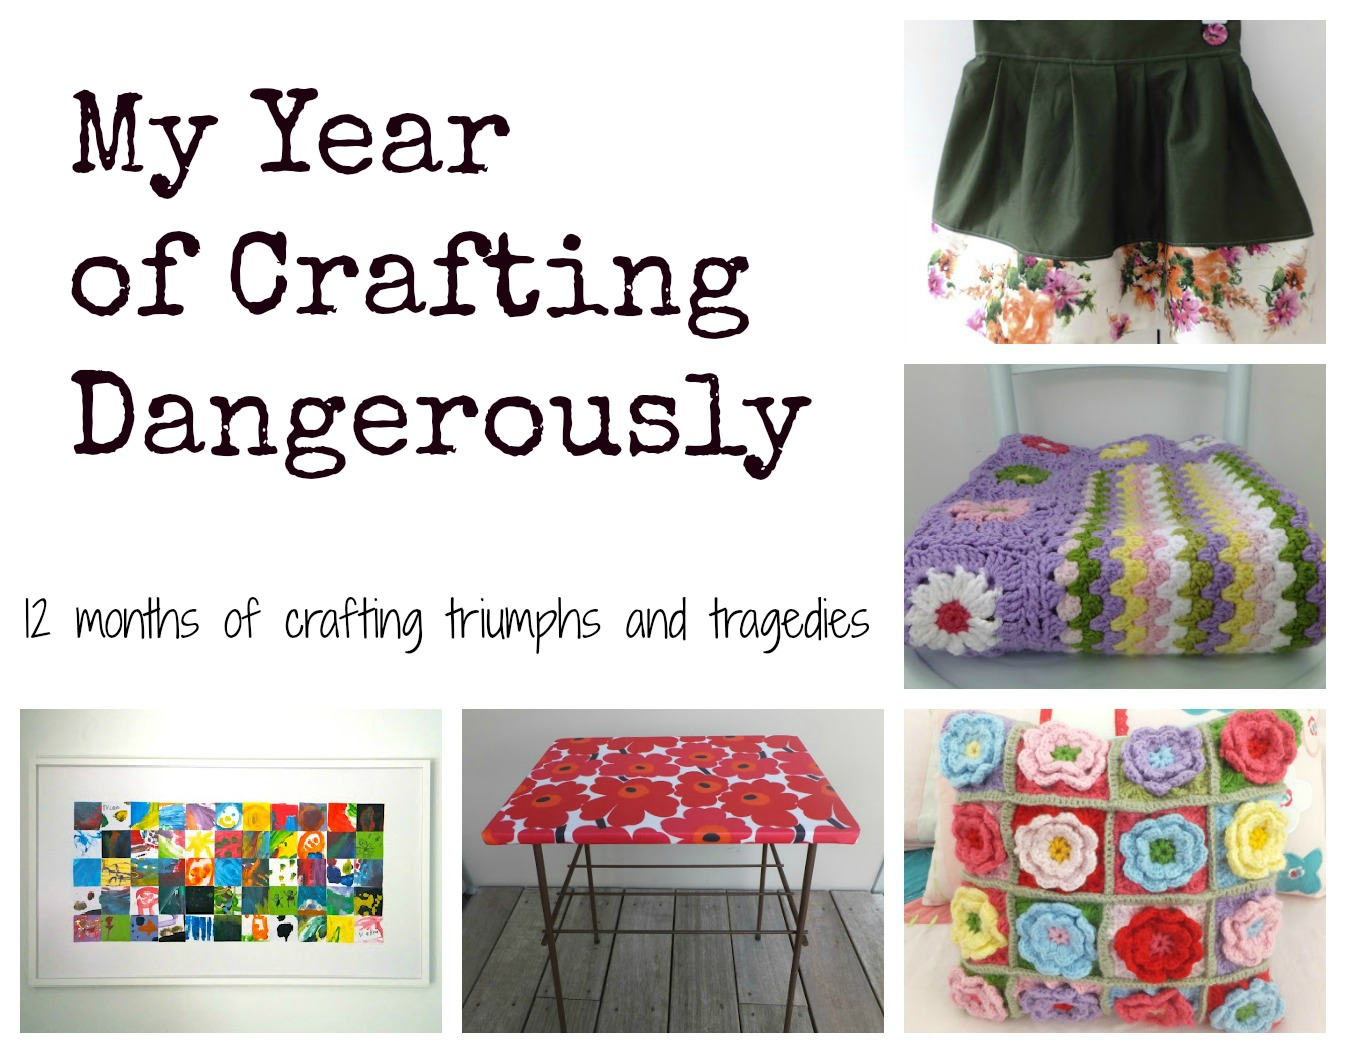 My Year of Crafting Dangerously